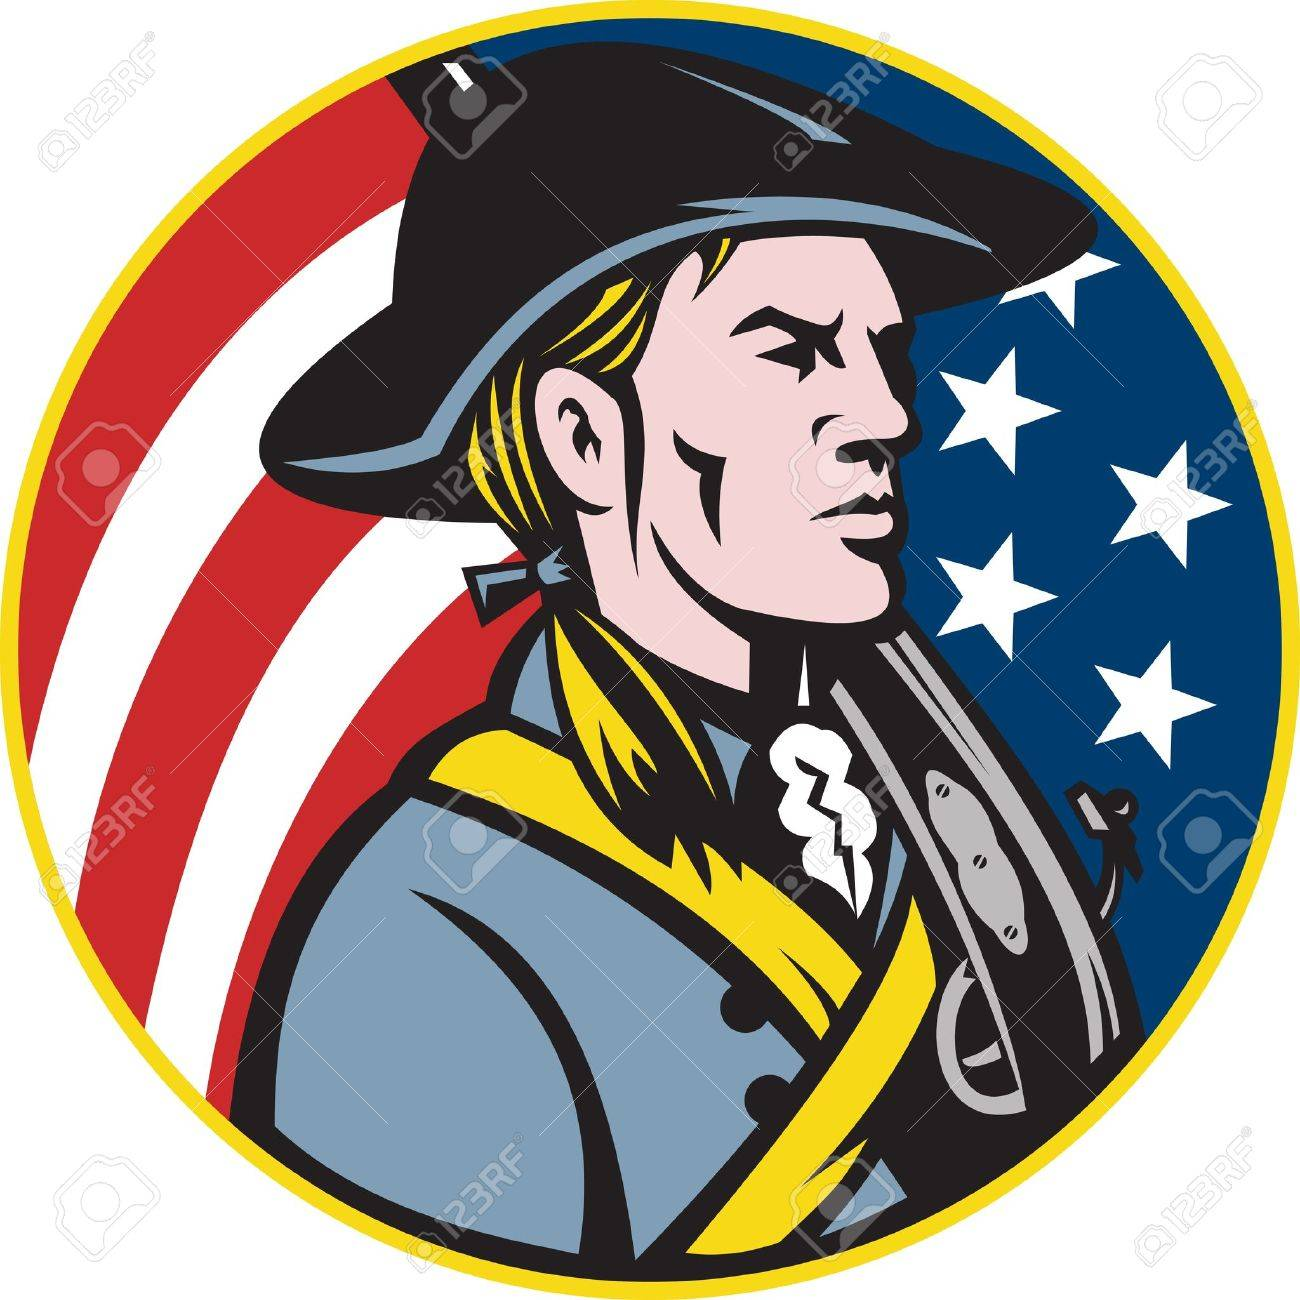 illustration of an american patriot minuteman revolutionary soldier rh 123rf com minuteman clipart Minuteman Silhouette